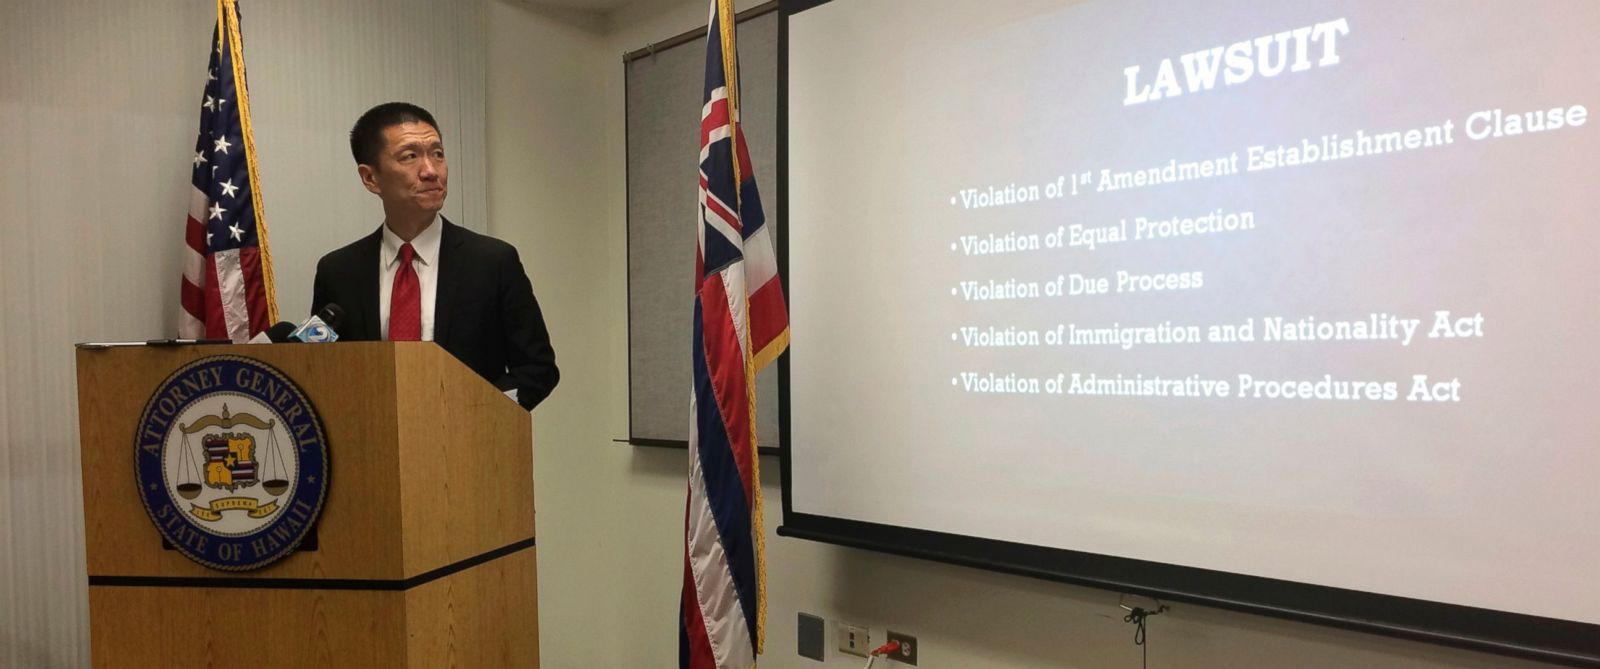 PHOTO: Hawaii Attorney General Doug Chin speaks at a news conference in Honolulu on Feb. 3, 2017, announcing the state of Hawaii has filed a lawsuit challenging President Donald Trumps travel ban.